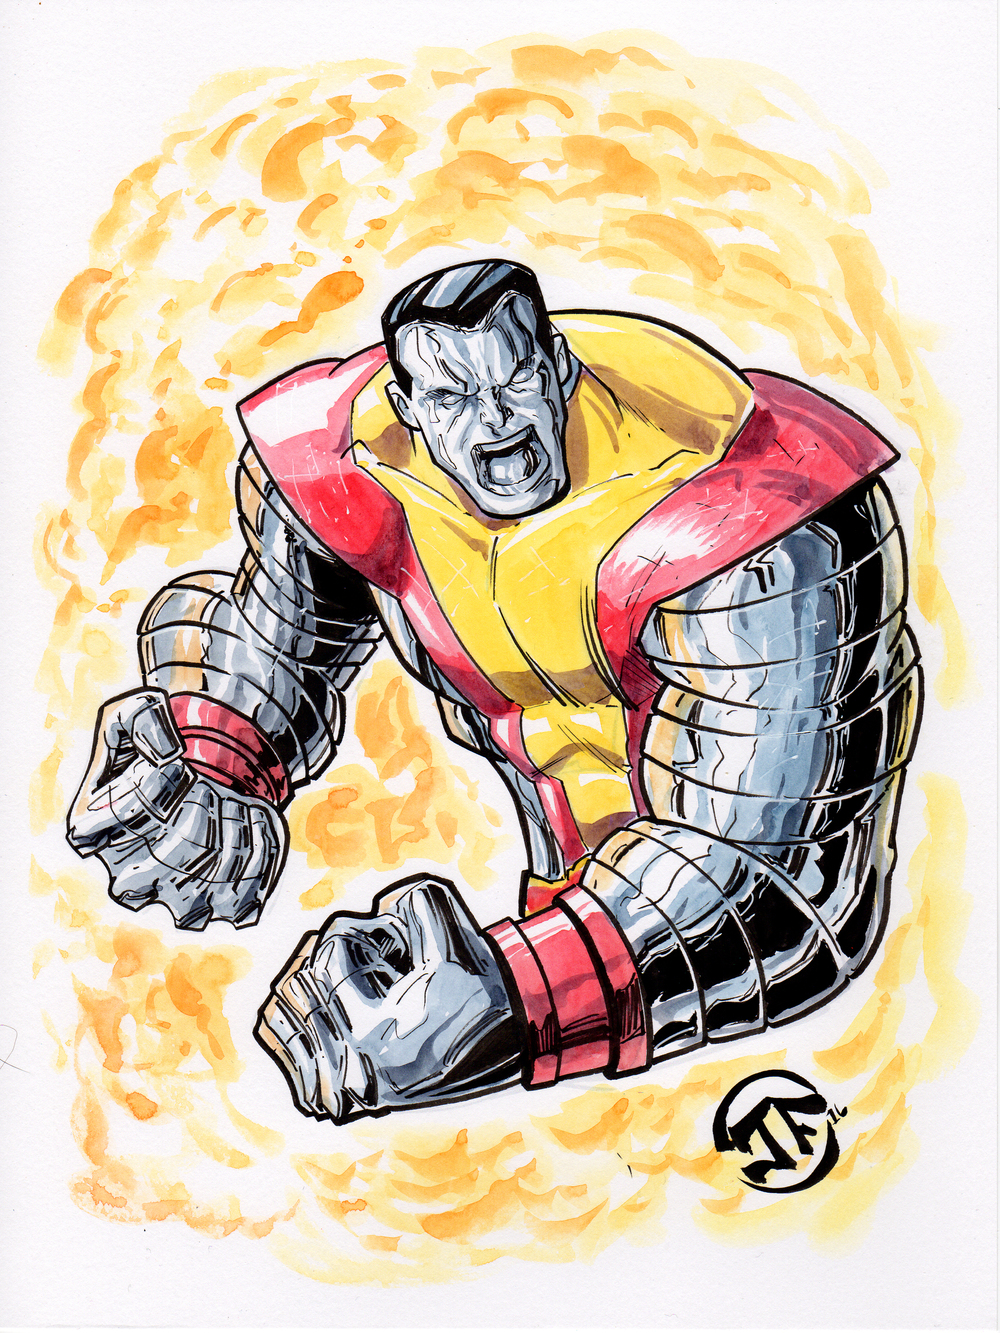 Colossus Watercolor Sketch